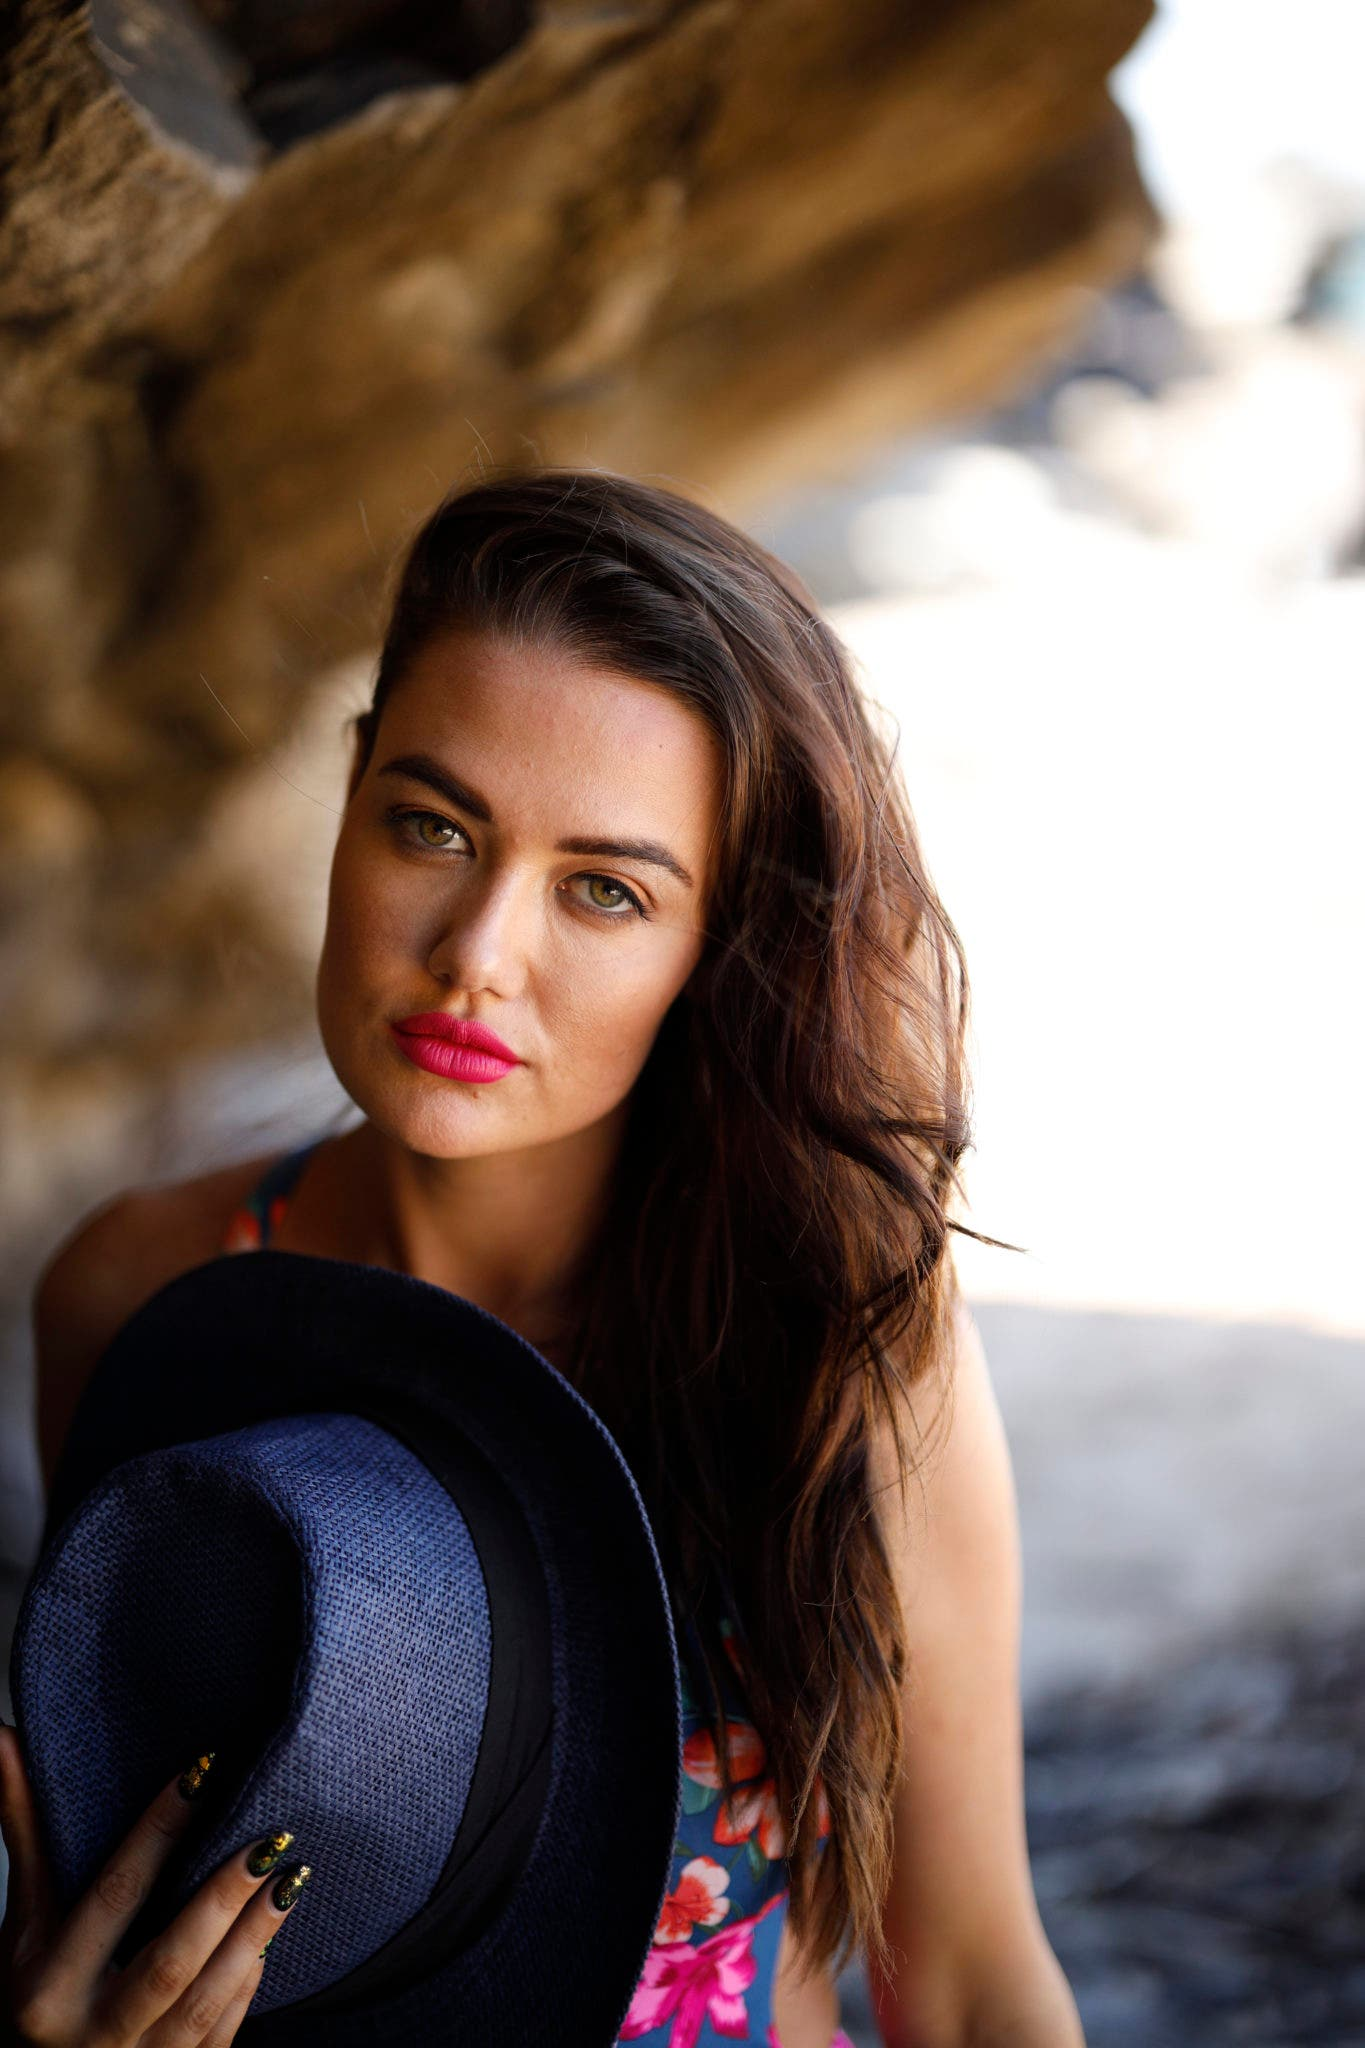 How to Enjoy Shooting Portraits With a F1.2 Lens